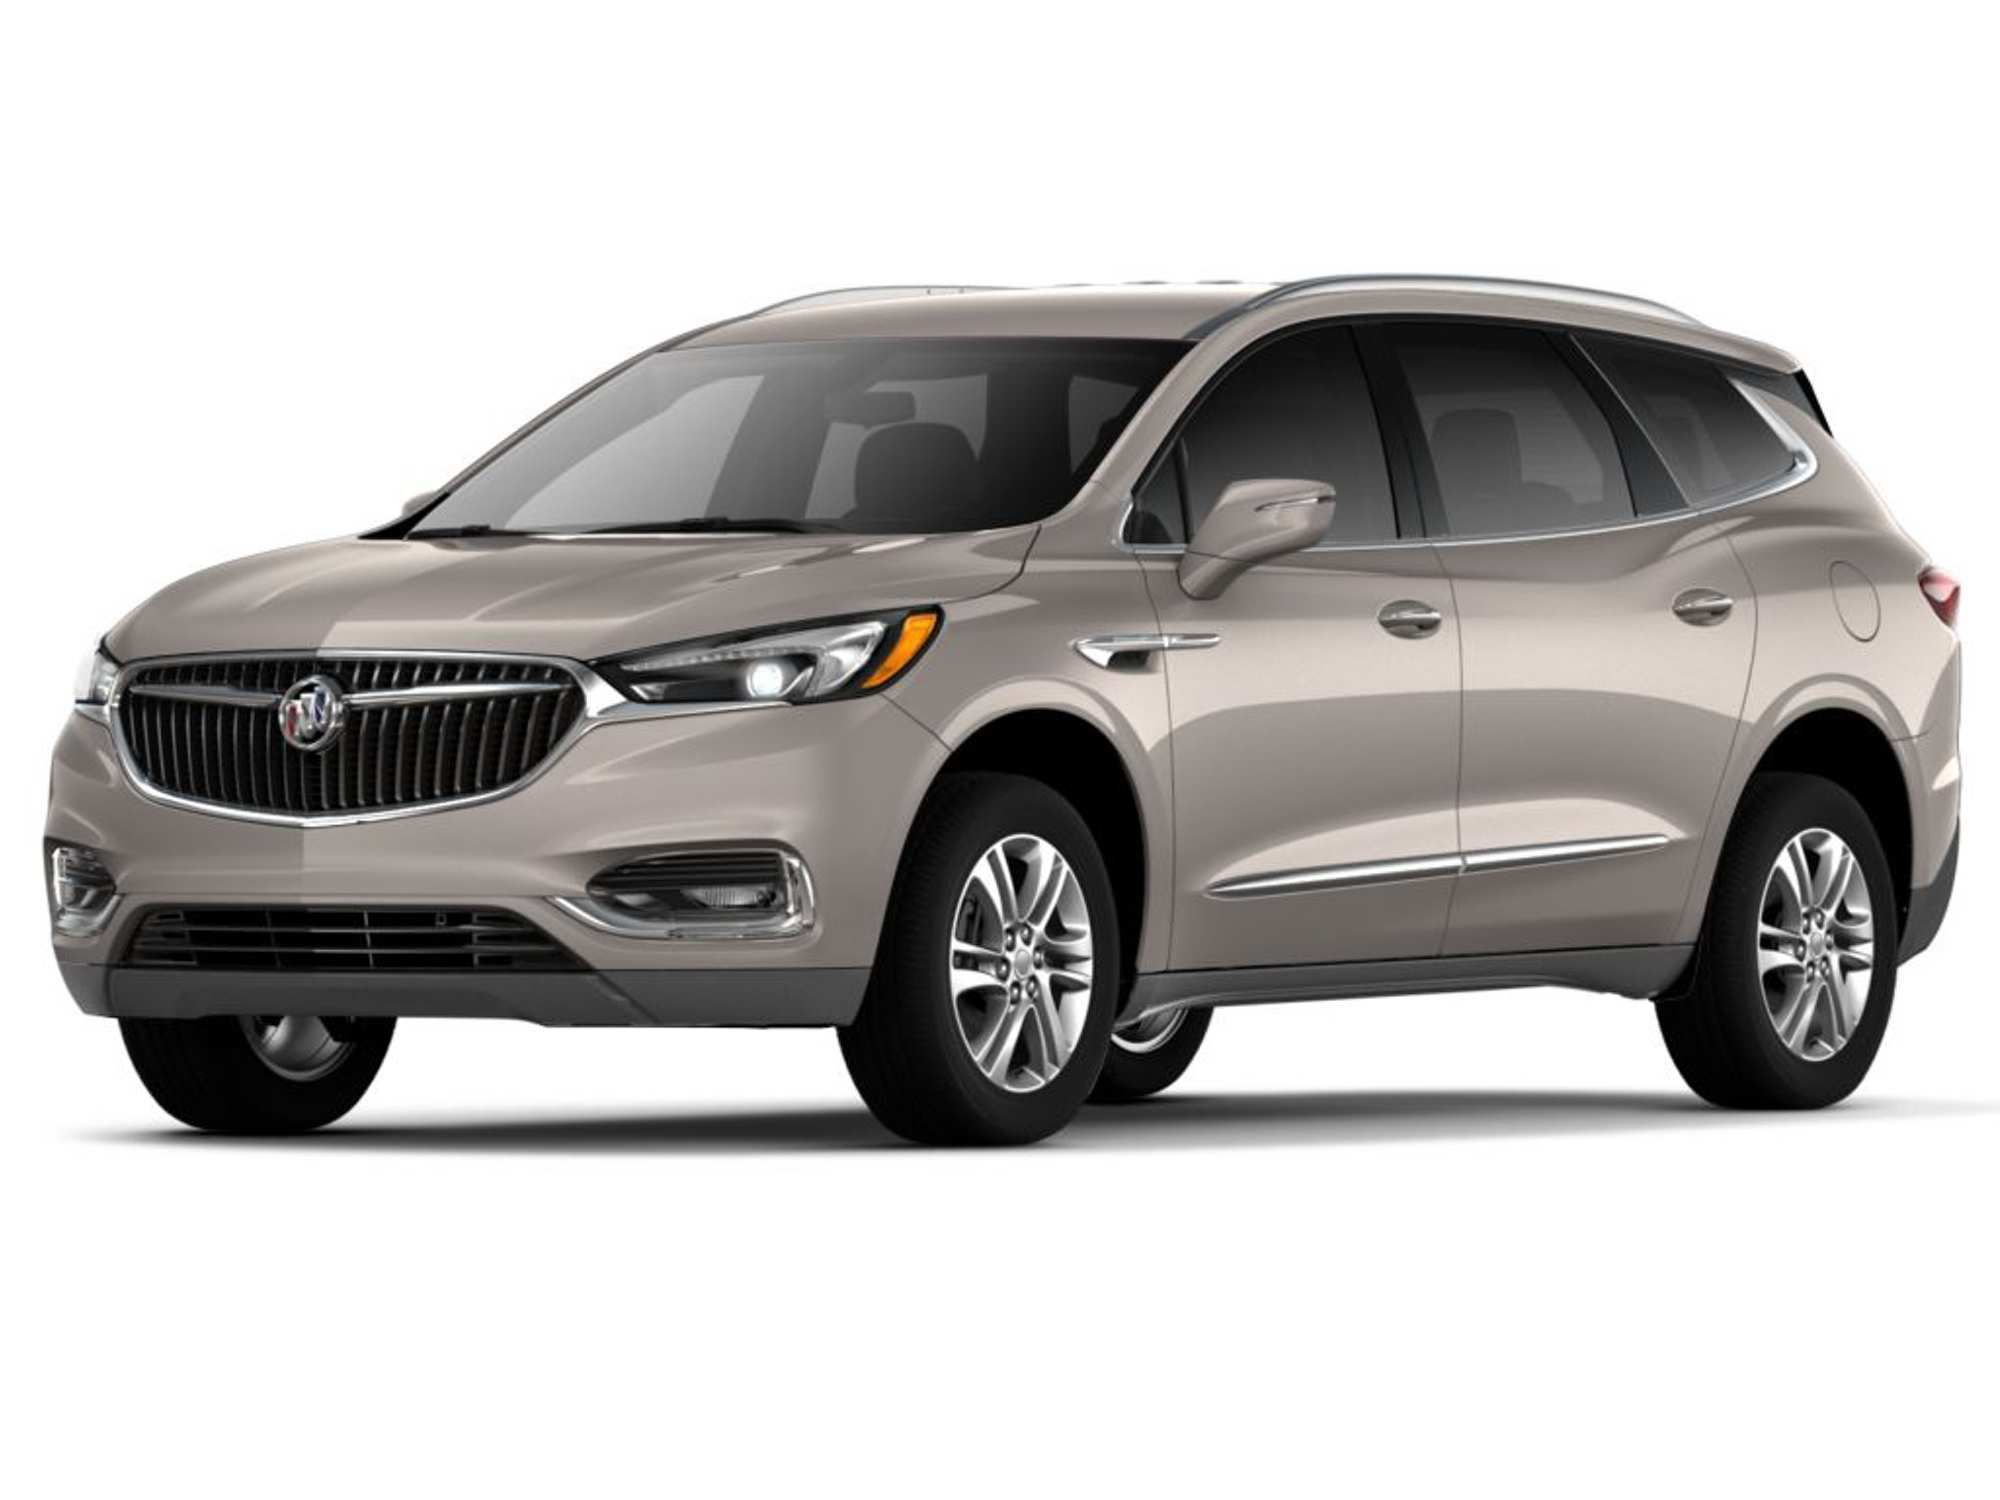 30 Concept of Buick Encore 2020 Colors Price and Review with Buick Encore 2020 Colors